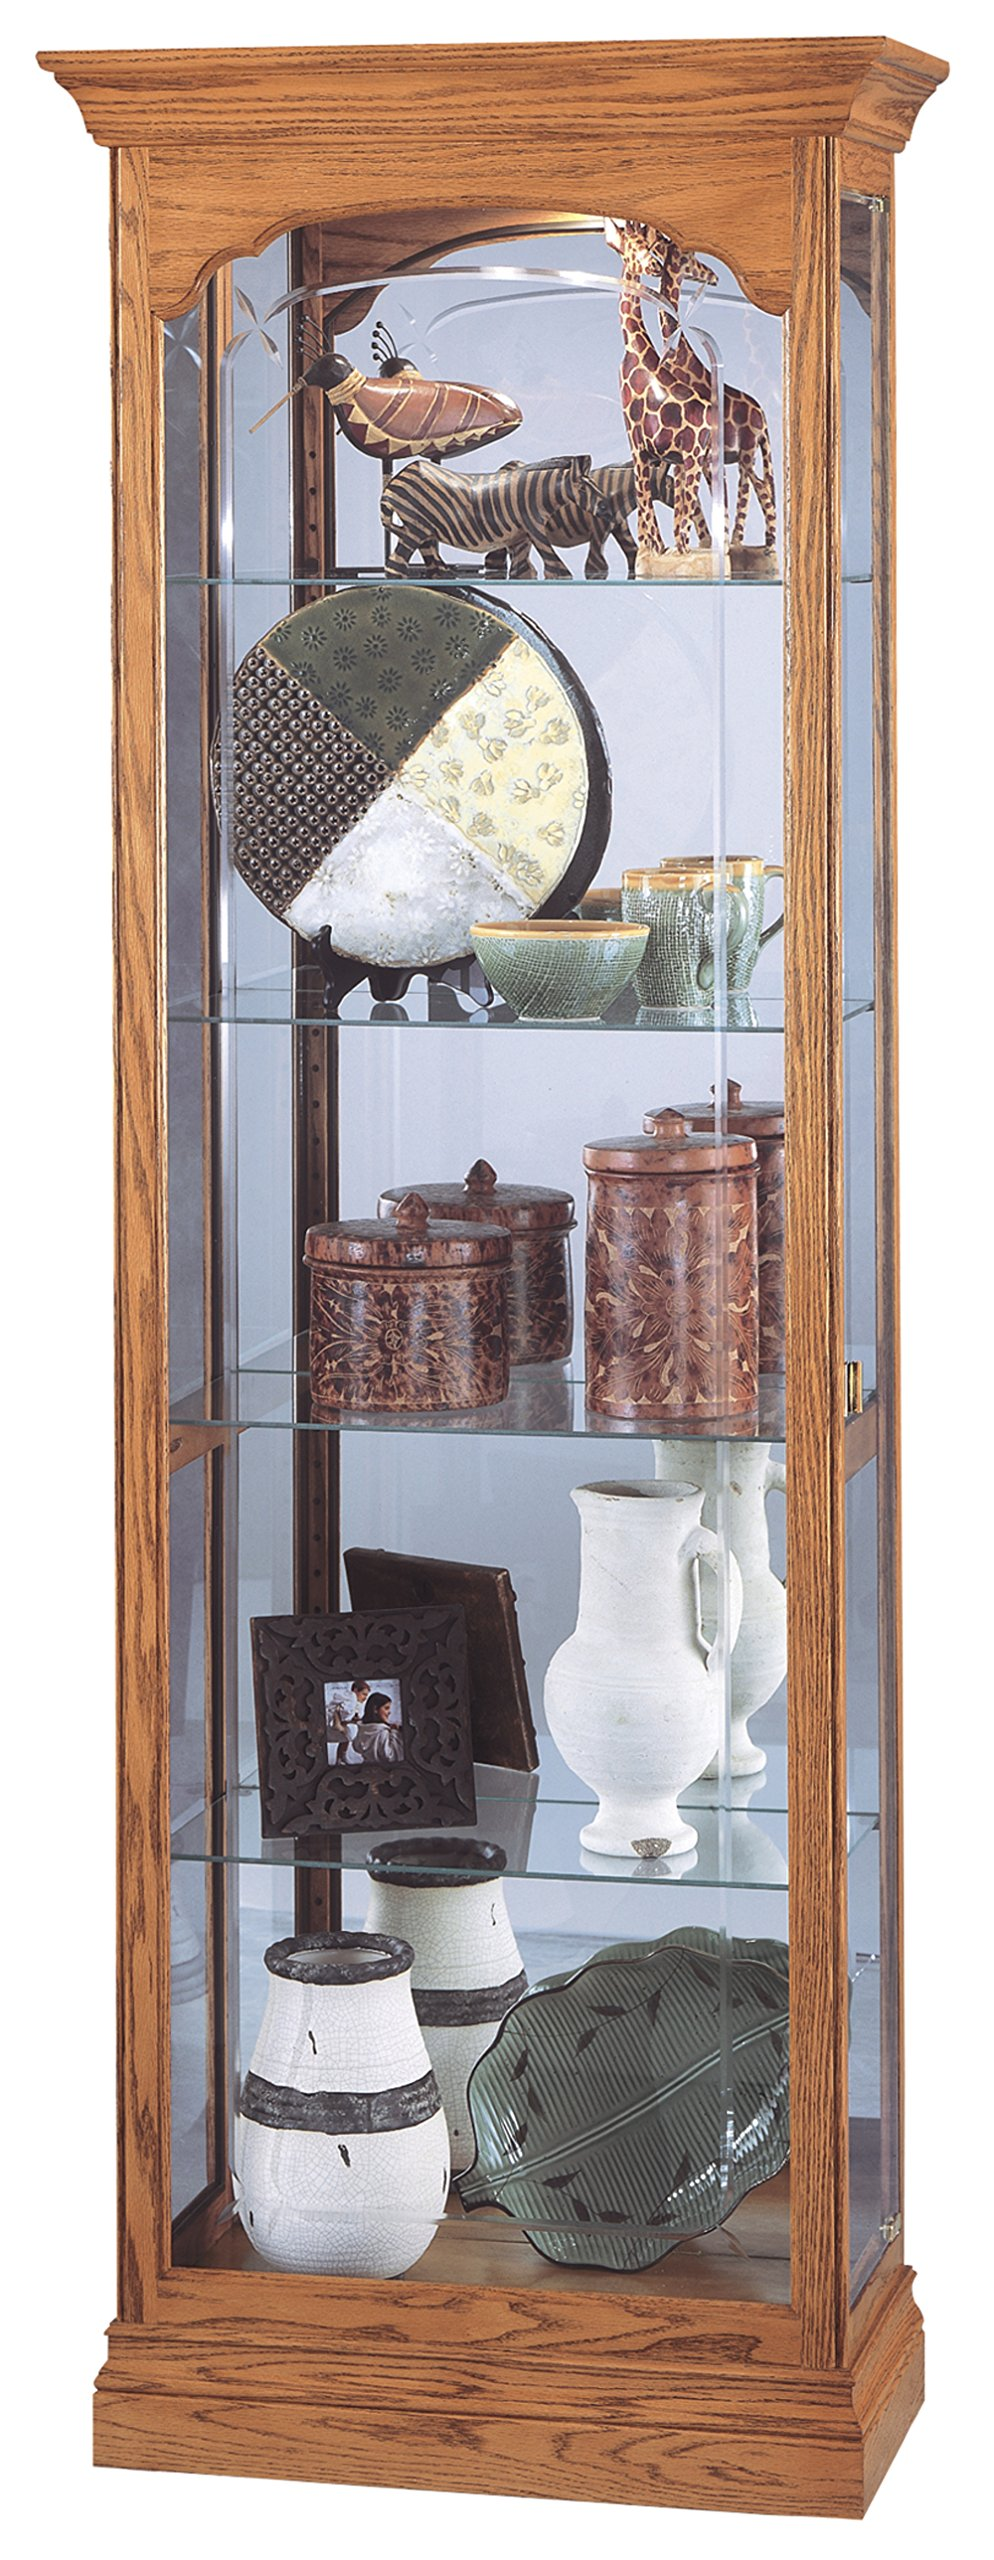 Howard Miller 680-341 Torrington Curio Cabinet by Howard Miller